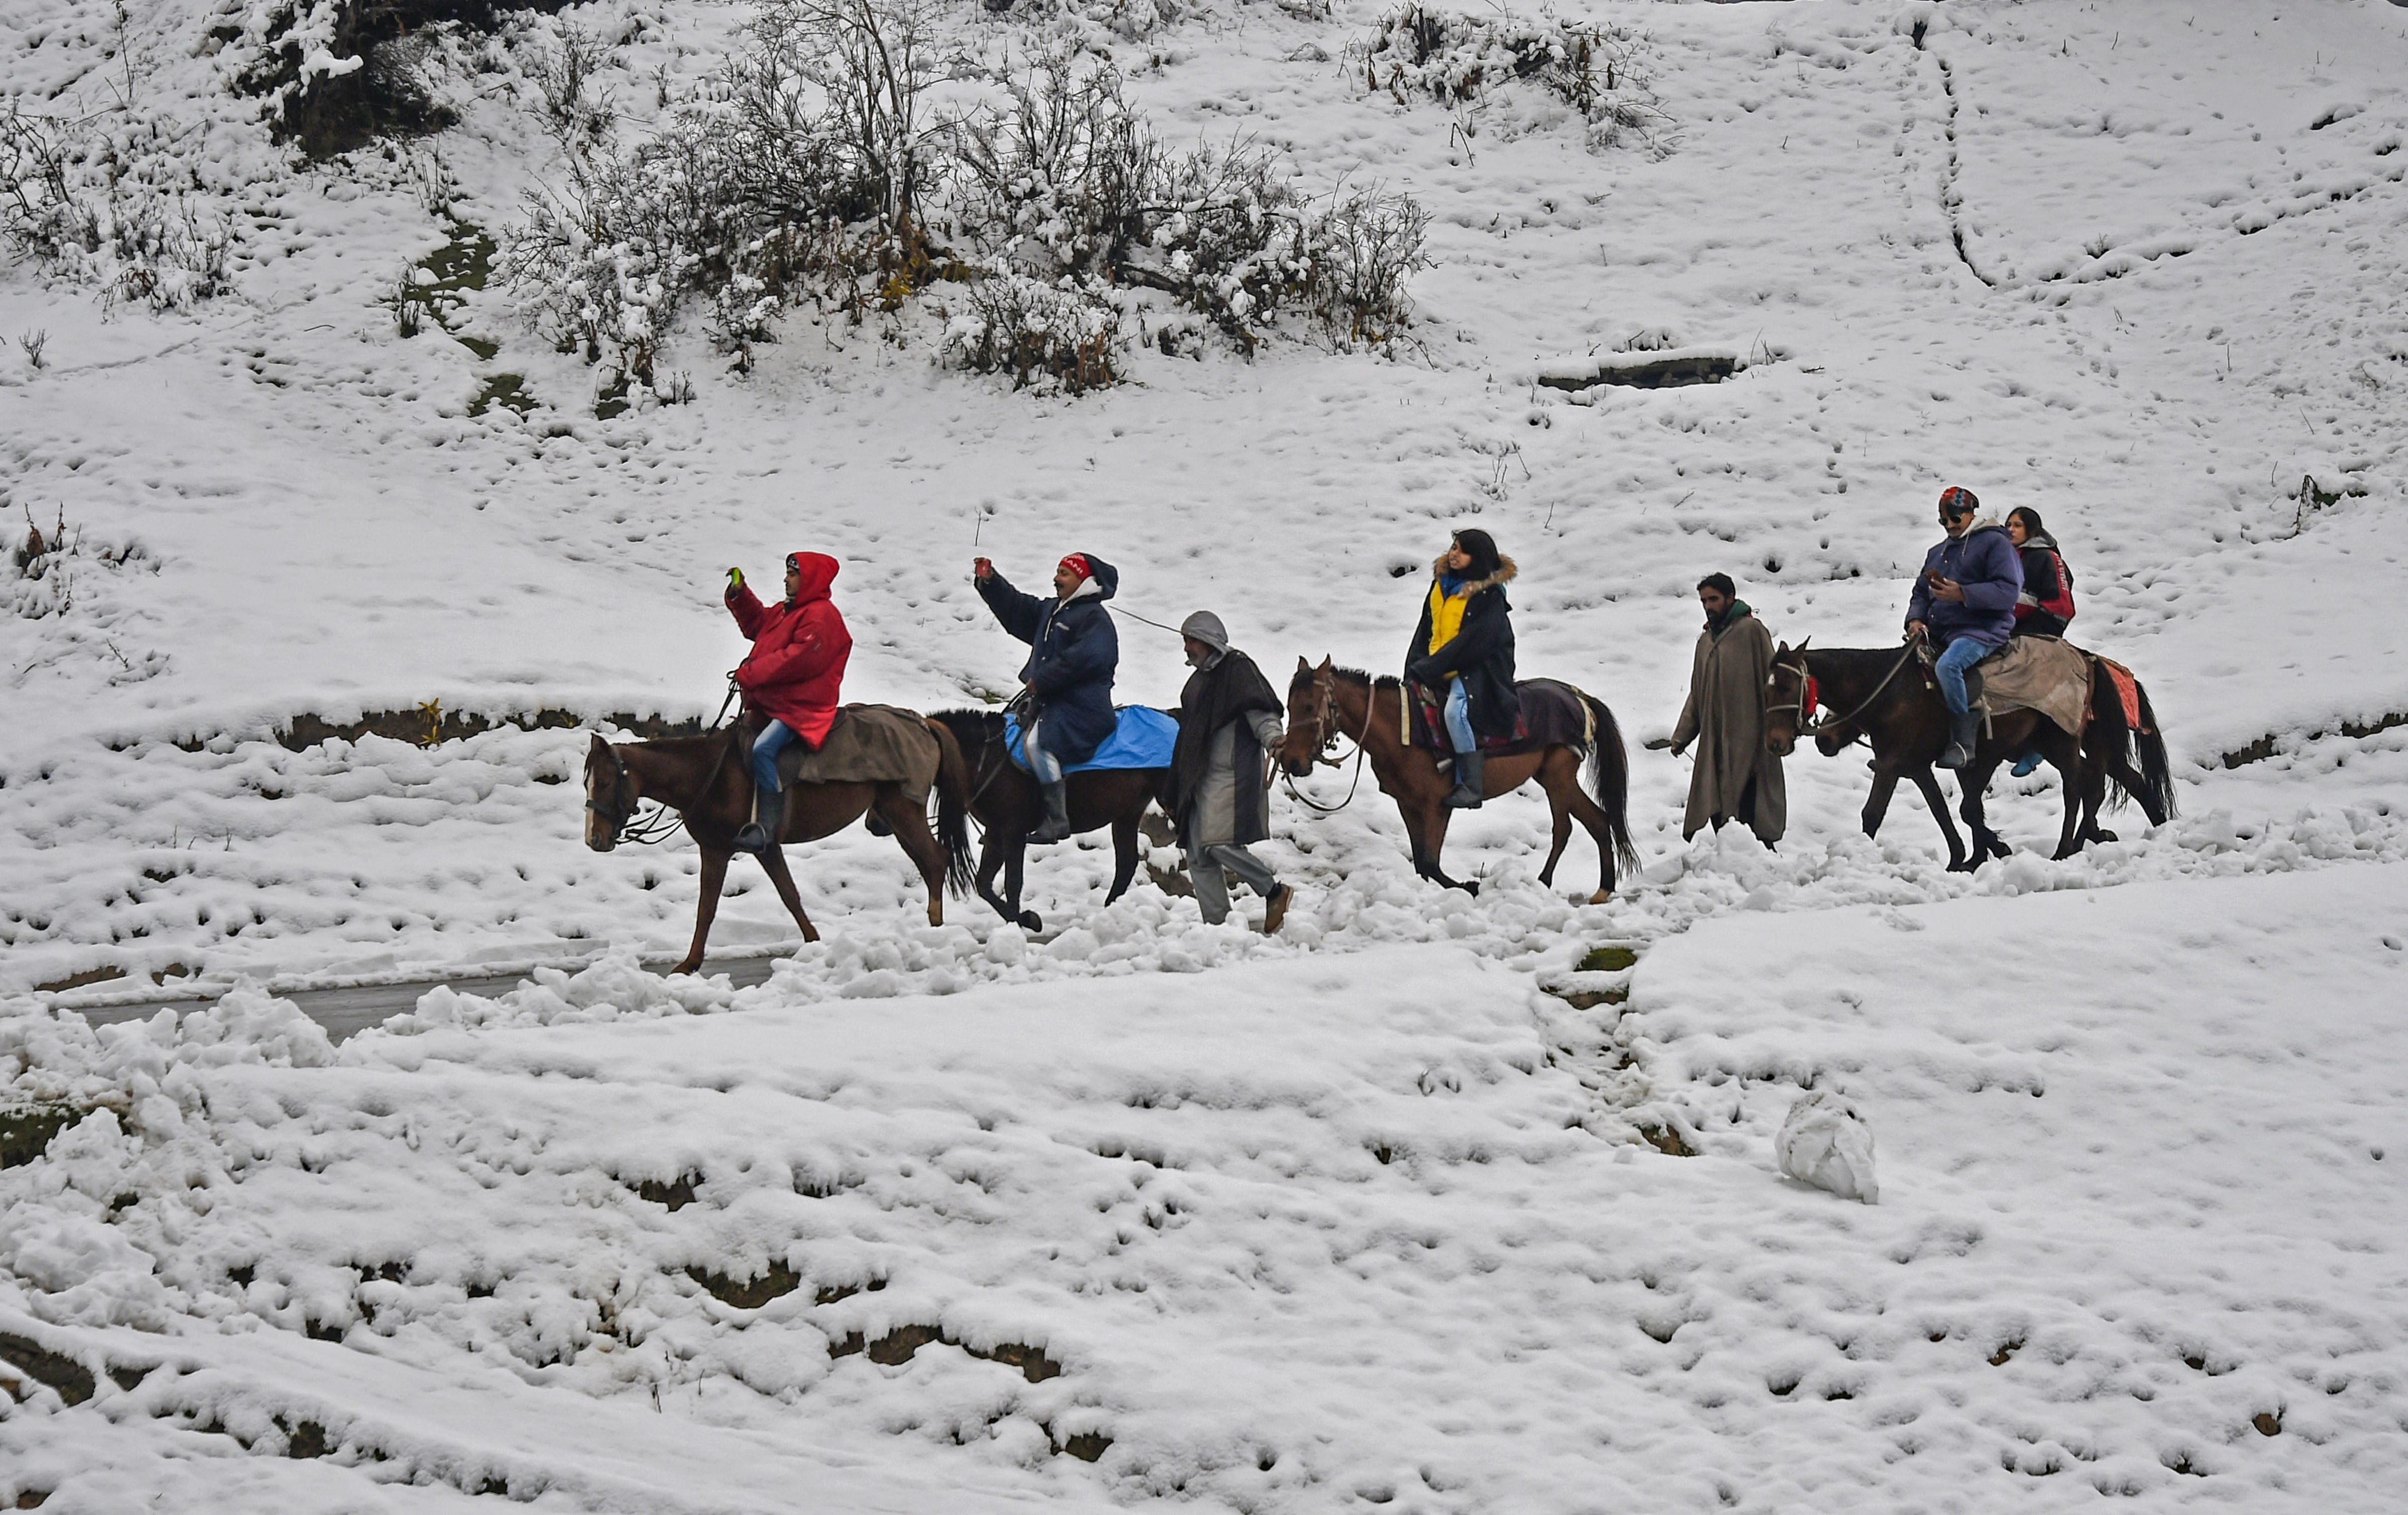 Tourists on a pony ride after the season's first snowfal in Gulmarg.